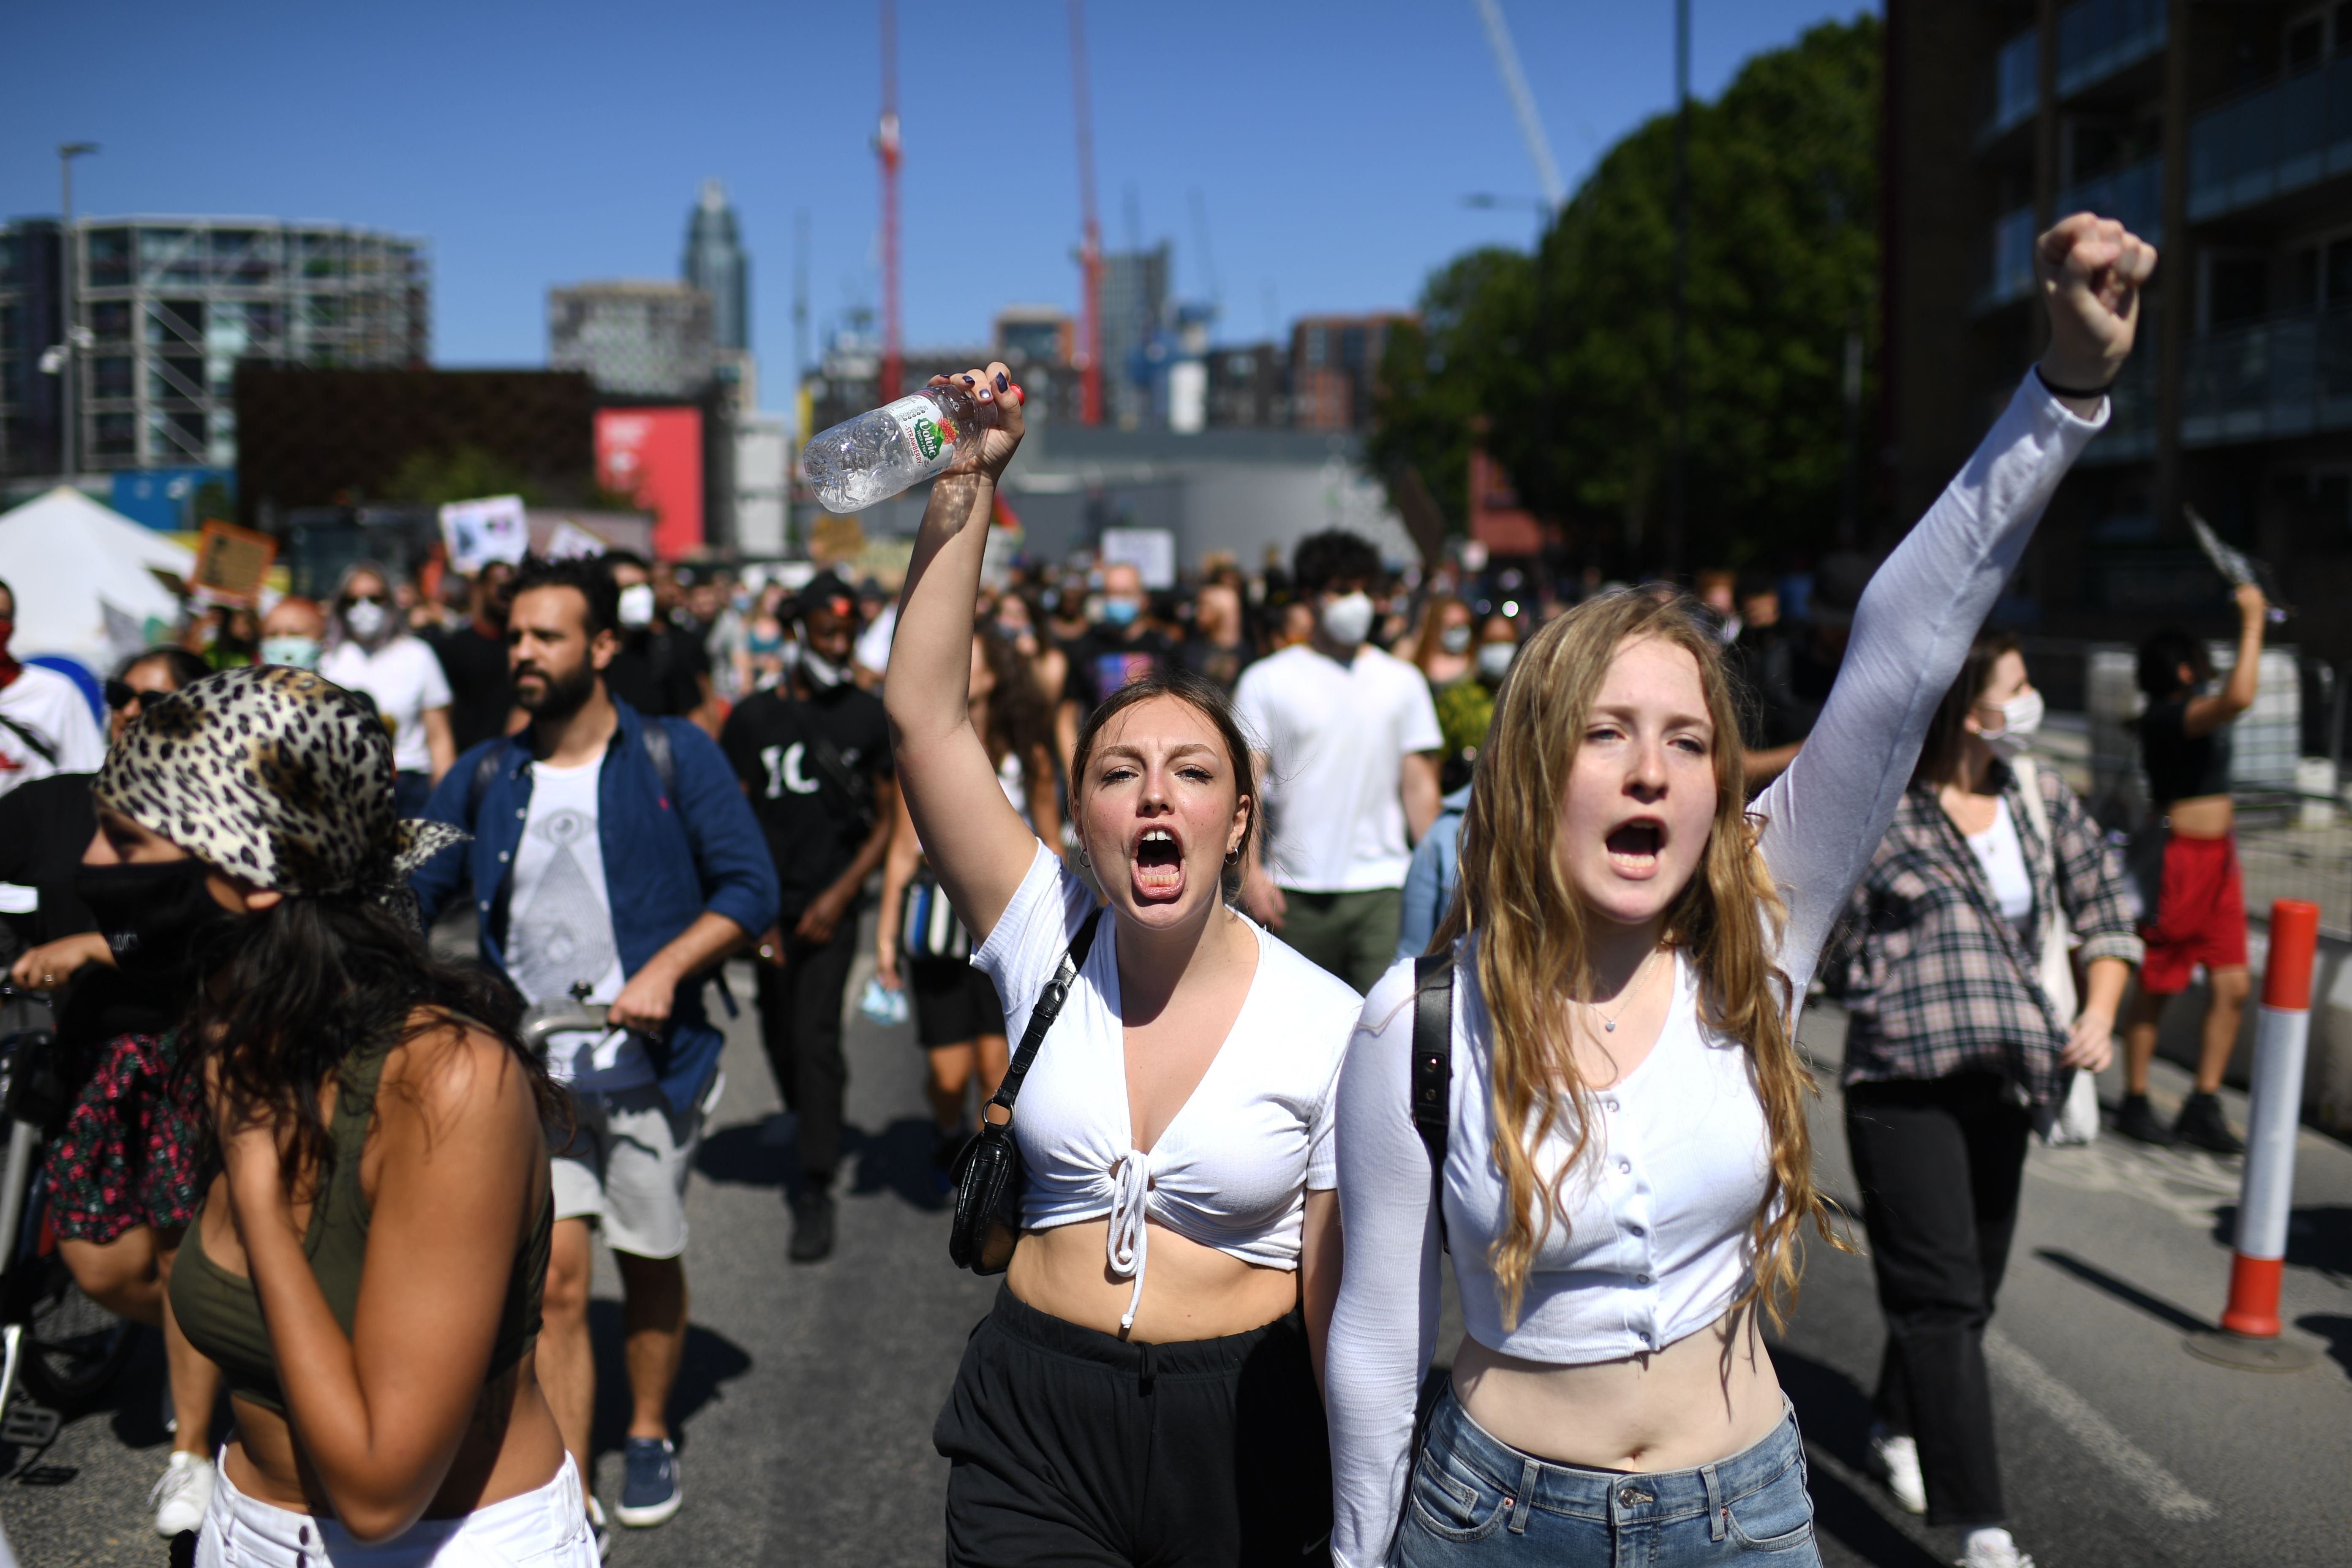 Demonstrators shout slogans as they march in the road outside the US Embassy in London on May 31, 2020 to protest the death of George Floyd, an unarmed black man who died after a police officer knelt on his neck for nearly nine minutes during an arrest in Minneapolis, USA. - Hundreds gathered in central London and marched to teh US Embassy to protest the death of an unarmed black man in Minneapolis while in police custody that has sparked days of unrest in the US city and beyond. (Photo by DANIEL LEAL-OLIVAS / AFP) / The erroneous mention[s] appearing in the metadata of this photo by DANIEL LEAL-OLIVAS has been modified in AFP systems in the following manner: [London] instead of [Brighton]. Please immediately remove the erroneous mention[s] from all your online services and delete it (them) from your servers. If you have been authorized by AFP to distribute it (them) to third parties, please ensure that the same actions are carried out by them. Failure to promptly comply with these instructions will entail liability on your part for any continued or post notification usage. Therefore we thank you very much for all your attention and prompt action. We are sorry for the inconvenience this notification may cause and remain at your disposal for any further information you may require. (Photo by DANIEL LEAL-OLIVAS/AFP via Getty Images)